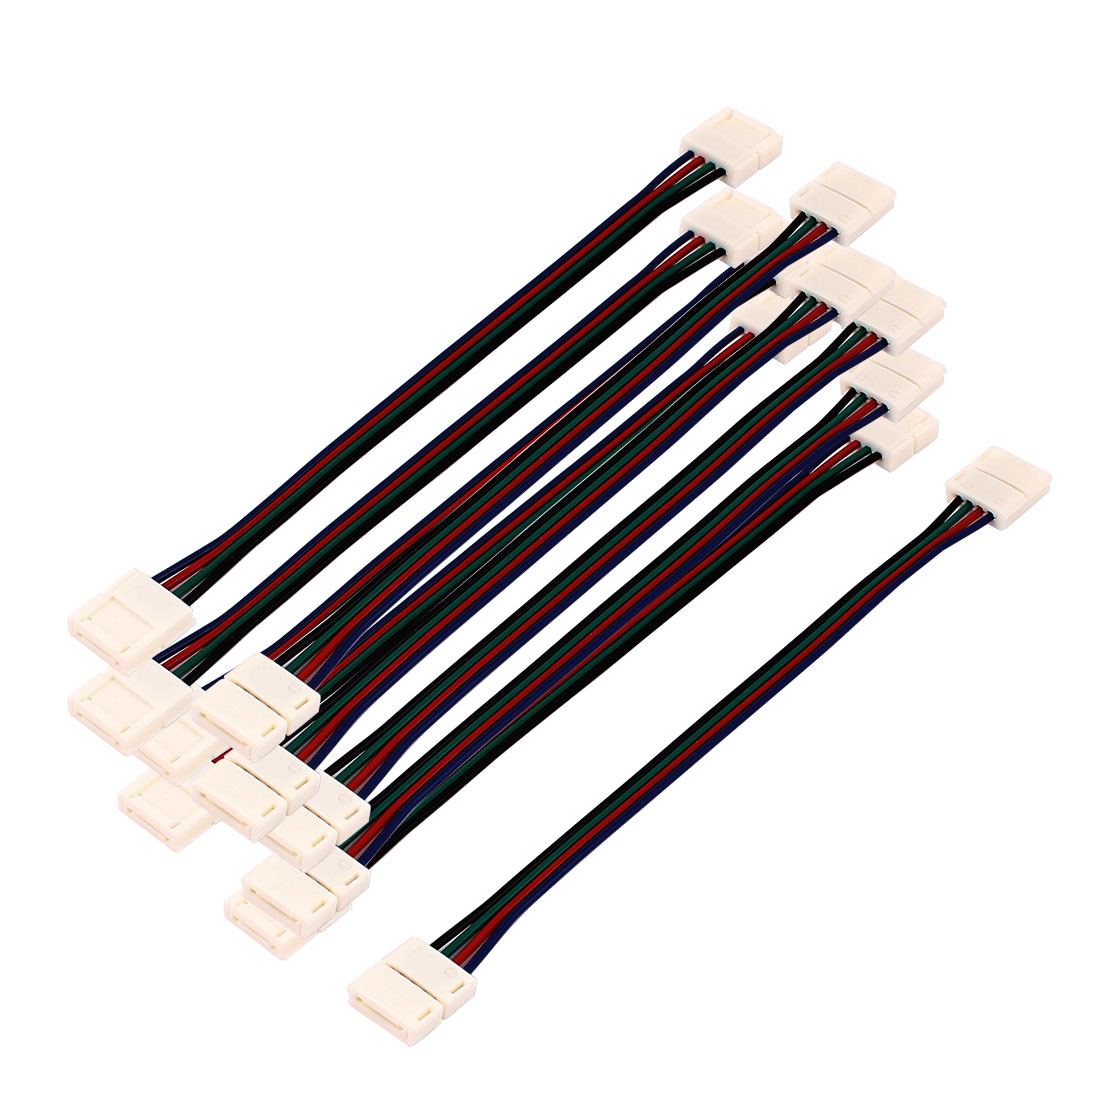 10Pcs 15cm Long 10mm Dual 4 Pole Wire Connector for Led 5050 RGB Lamp Strip